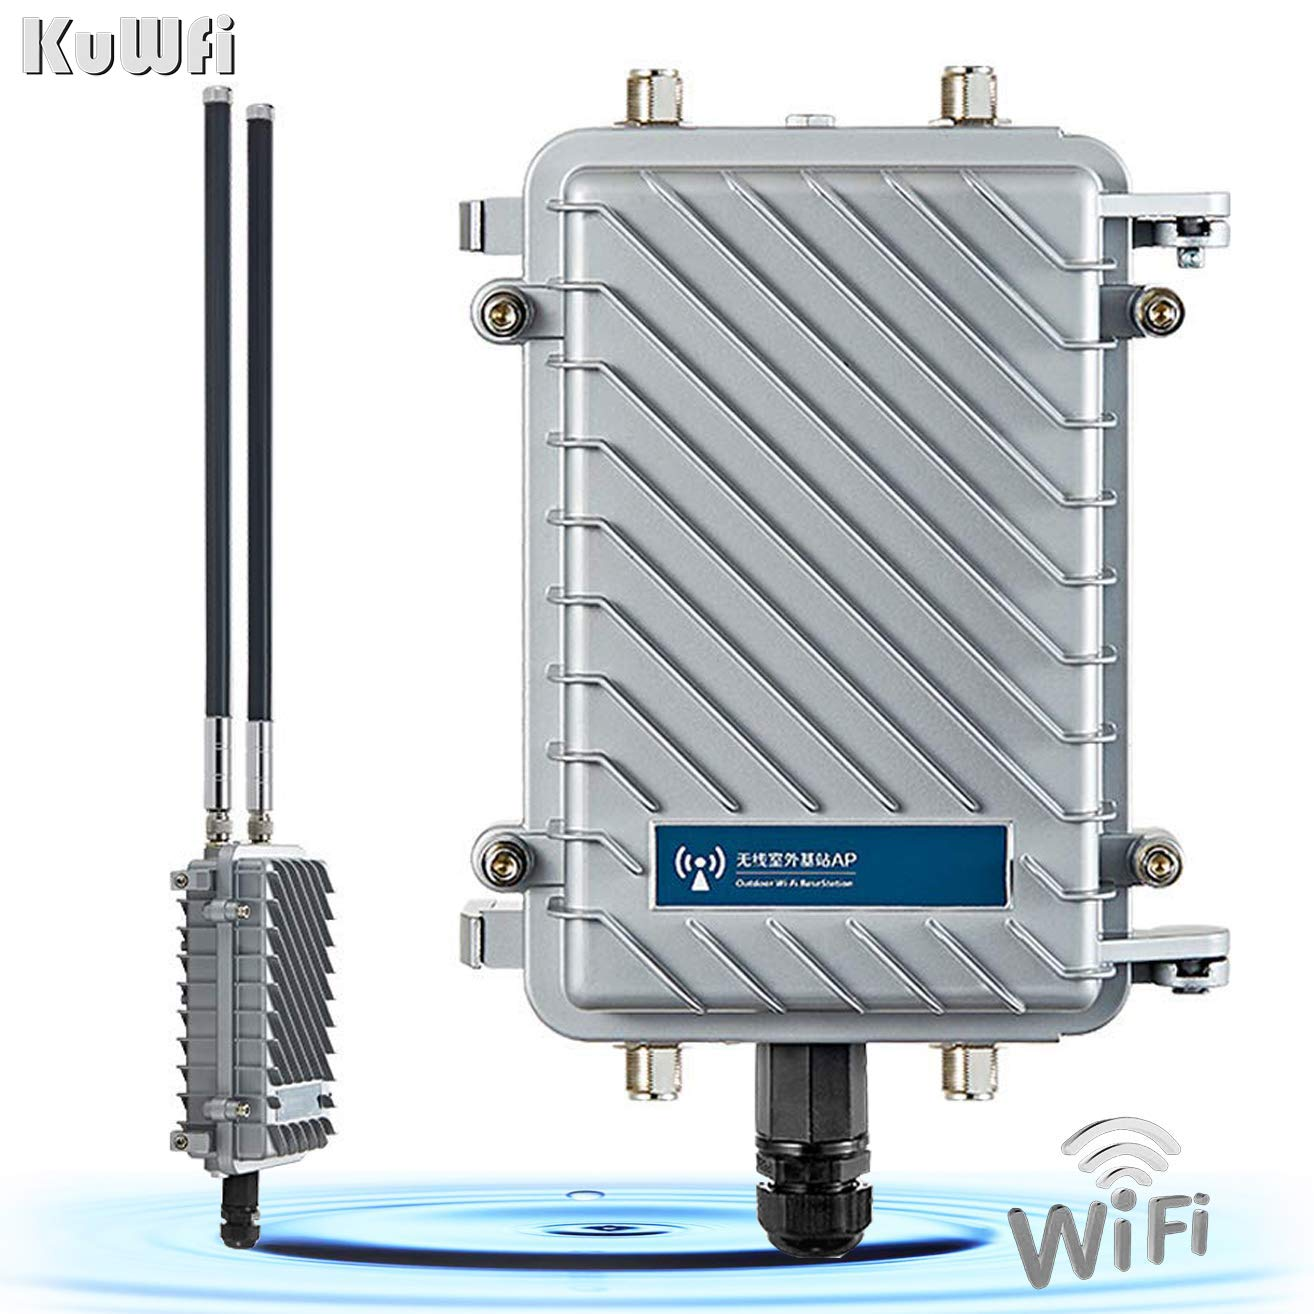 KuWFi High Performance 300Mpbs 2.4G Outdoor CPE/AP Waterproof Outdoor Base Station Access Point with 18dBi Panel Antenna Support Wireless AP/Gateway/WiFi Repeater/Bridge/WISP by KuWFi